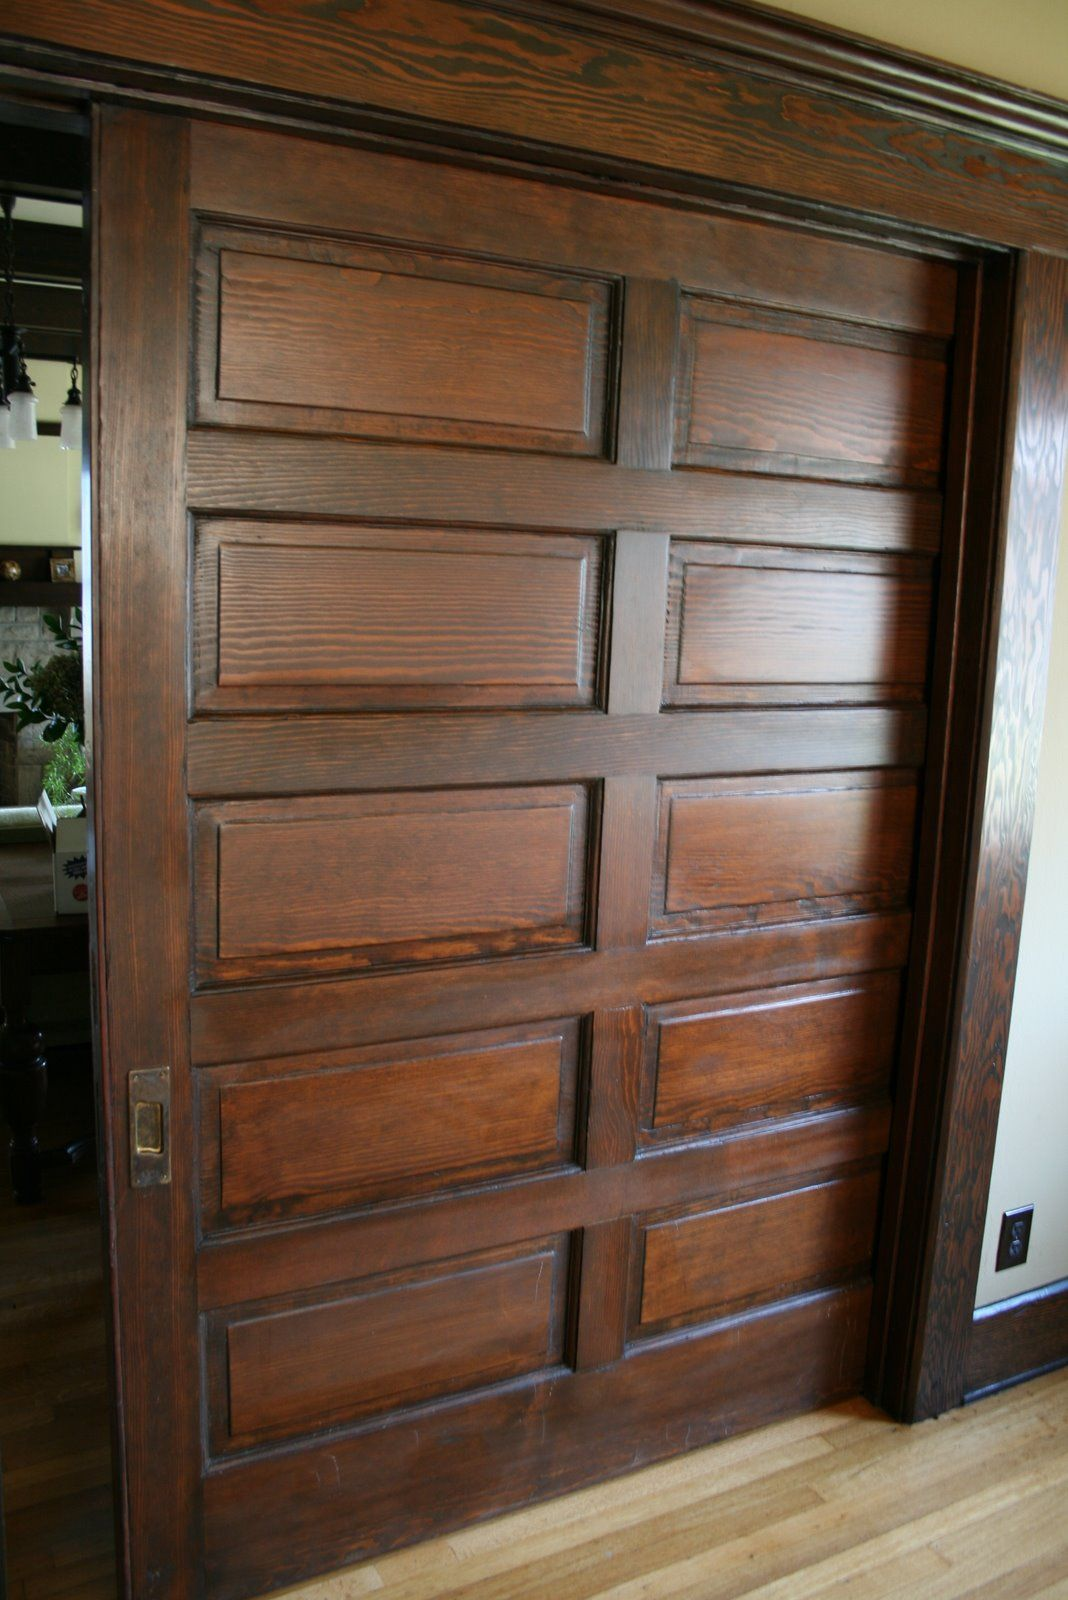 Pocket Door – 1908 Craftsman Bungalow, 2361 W. 20th St. – photo: - Pocket Door – 1908 Craftsman Bungalow, 2361 W. 20th St. – Photo